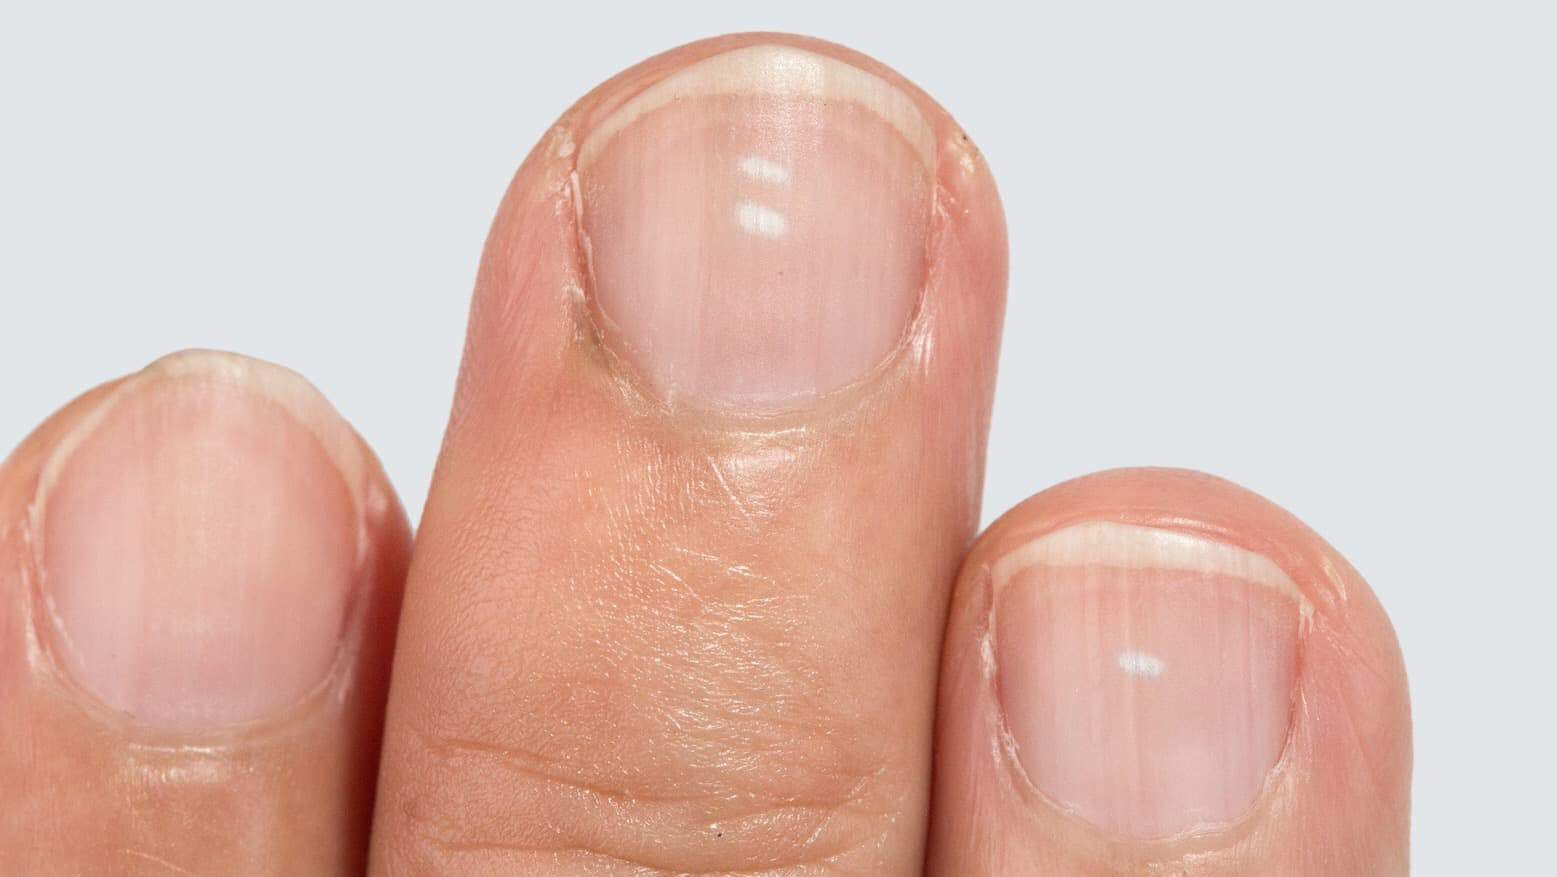 What The White Spots On Your Fingernails Reveal About Your Health